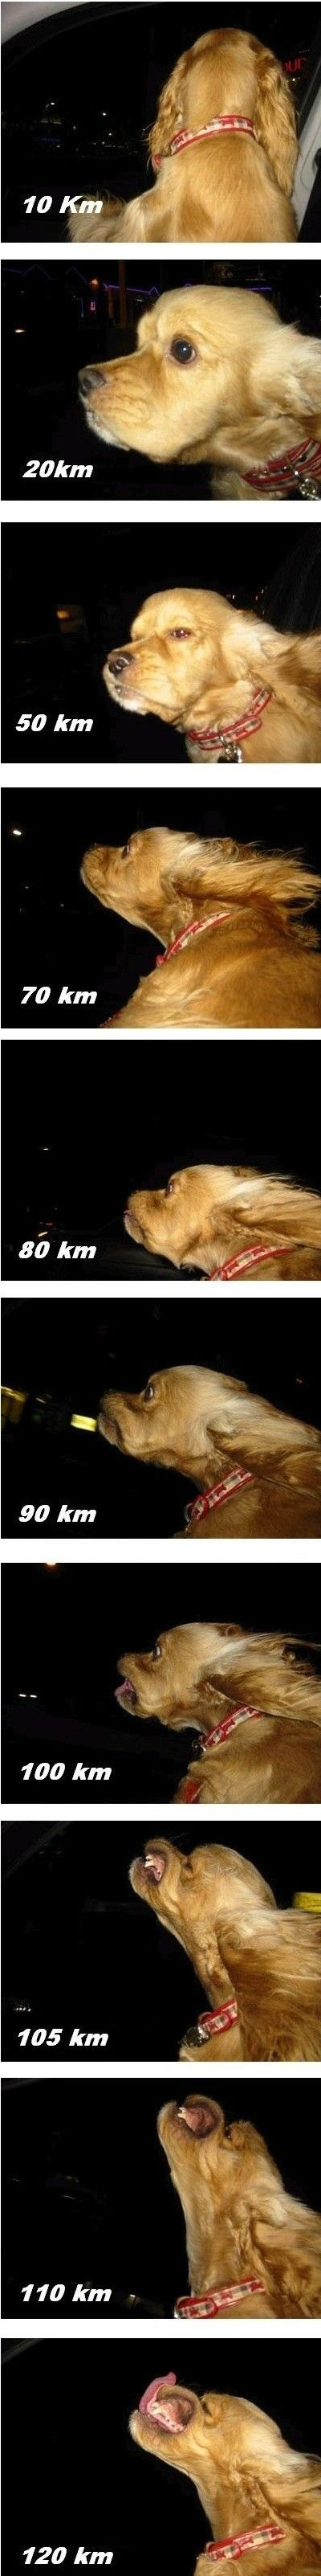 Photos of a dog sticking its head out the car window at increasing speeds